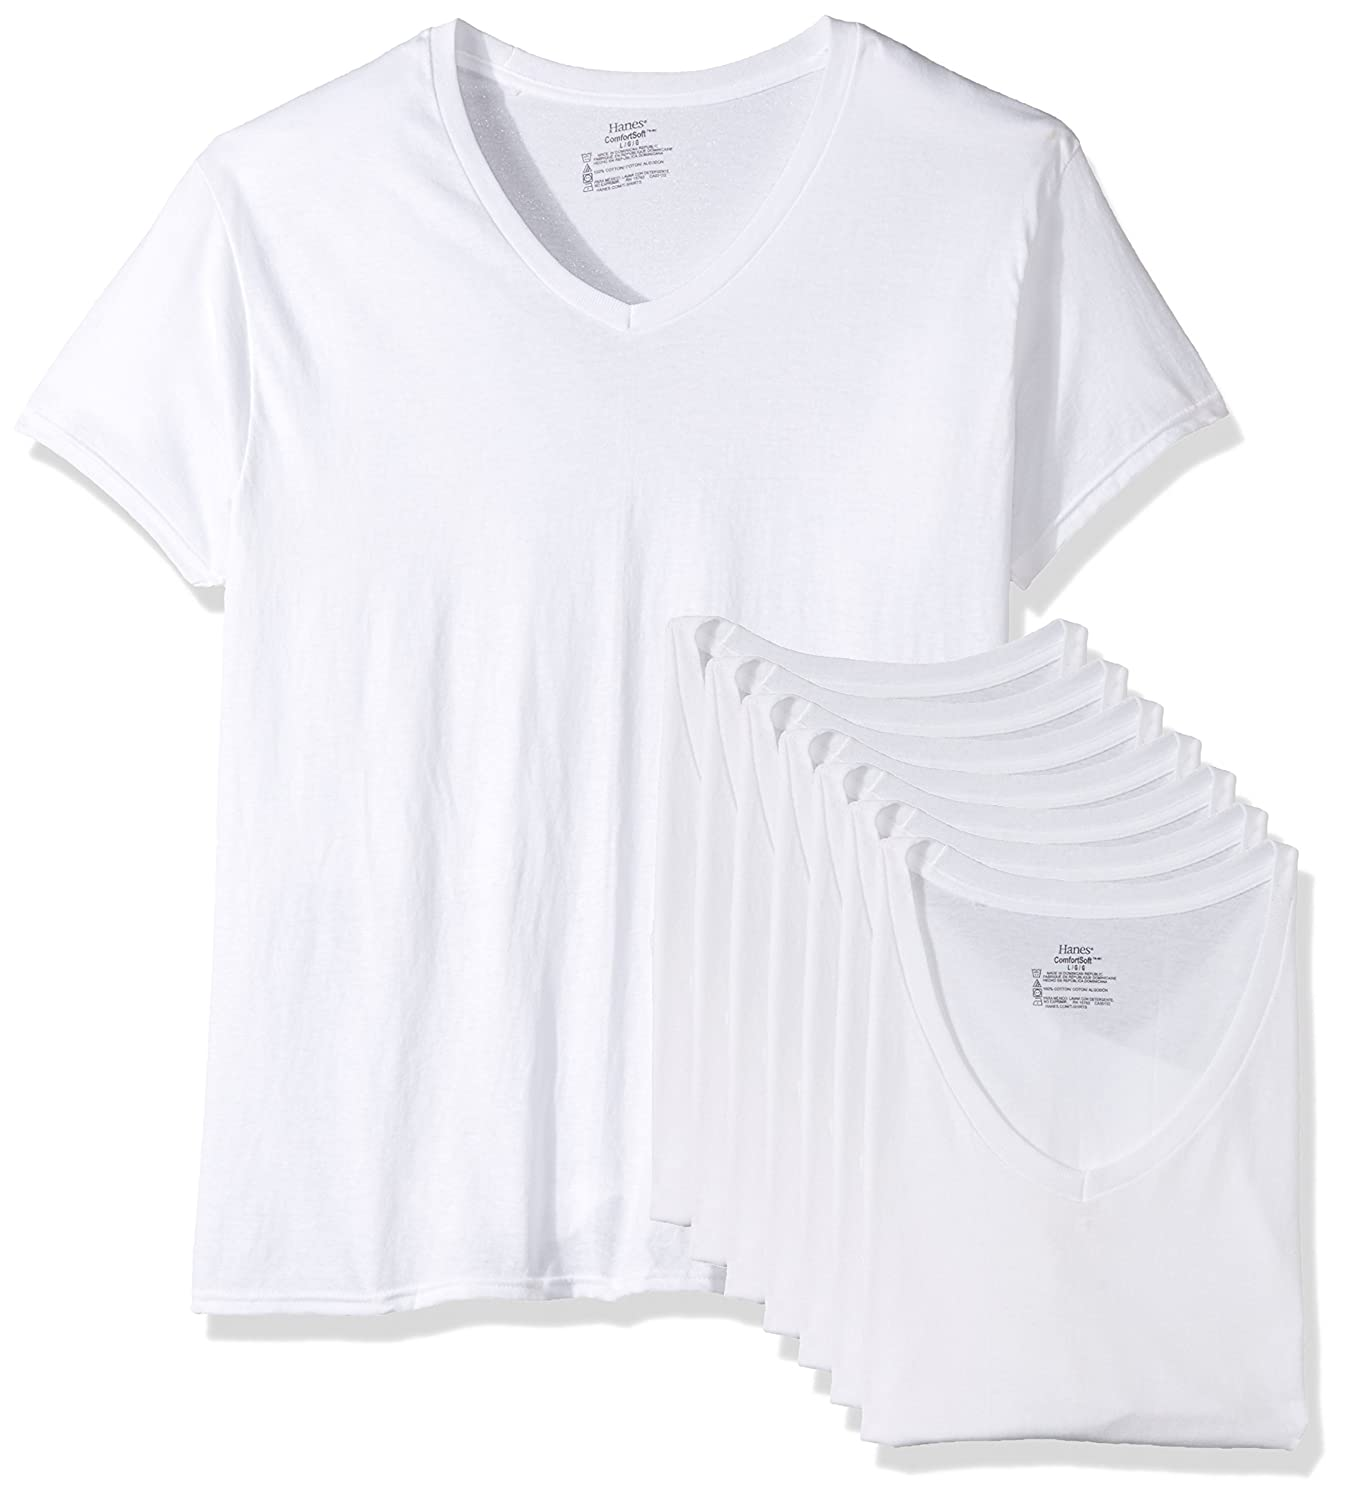 Hanes Men's 7 Pack Comfortsoft Tagless V-Neck T-Shirt (Bonus Pack) 777VG7